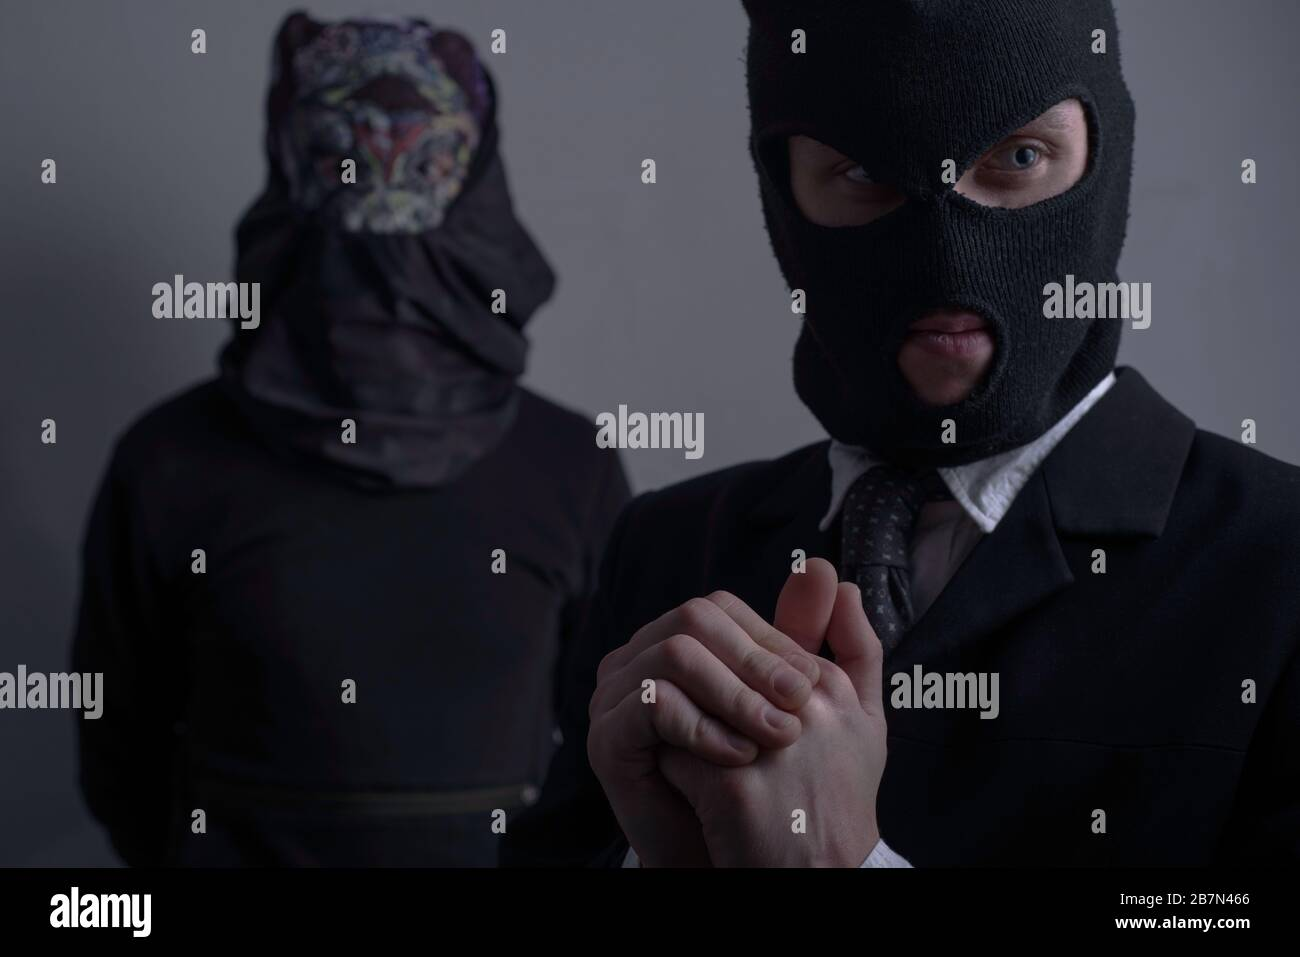 close-up-studio-portrait-two-robbers-a-b